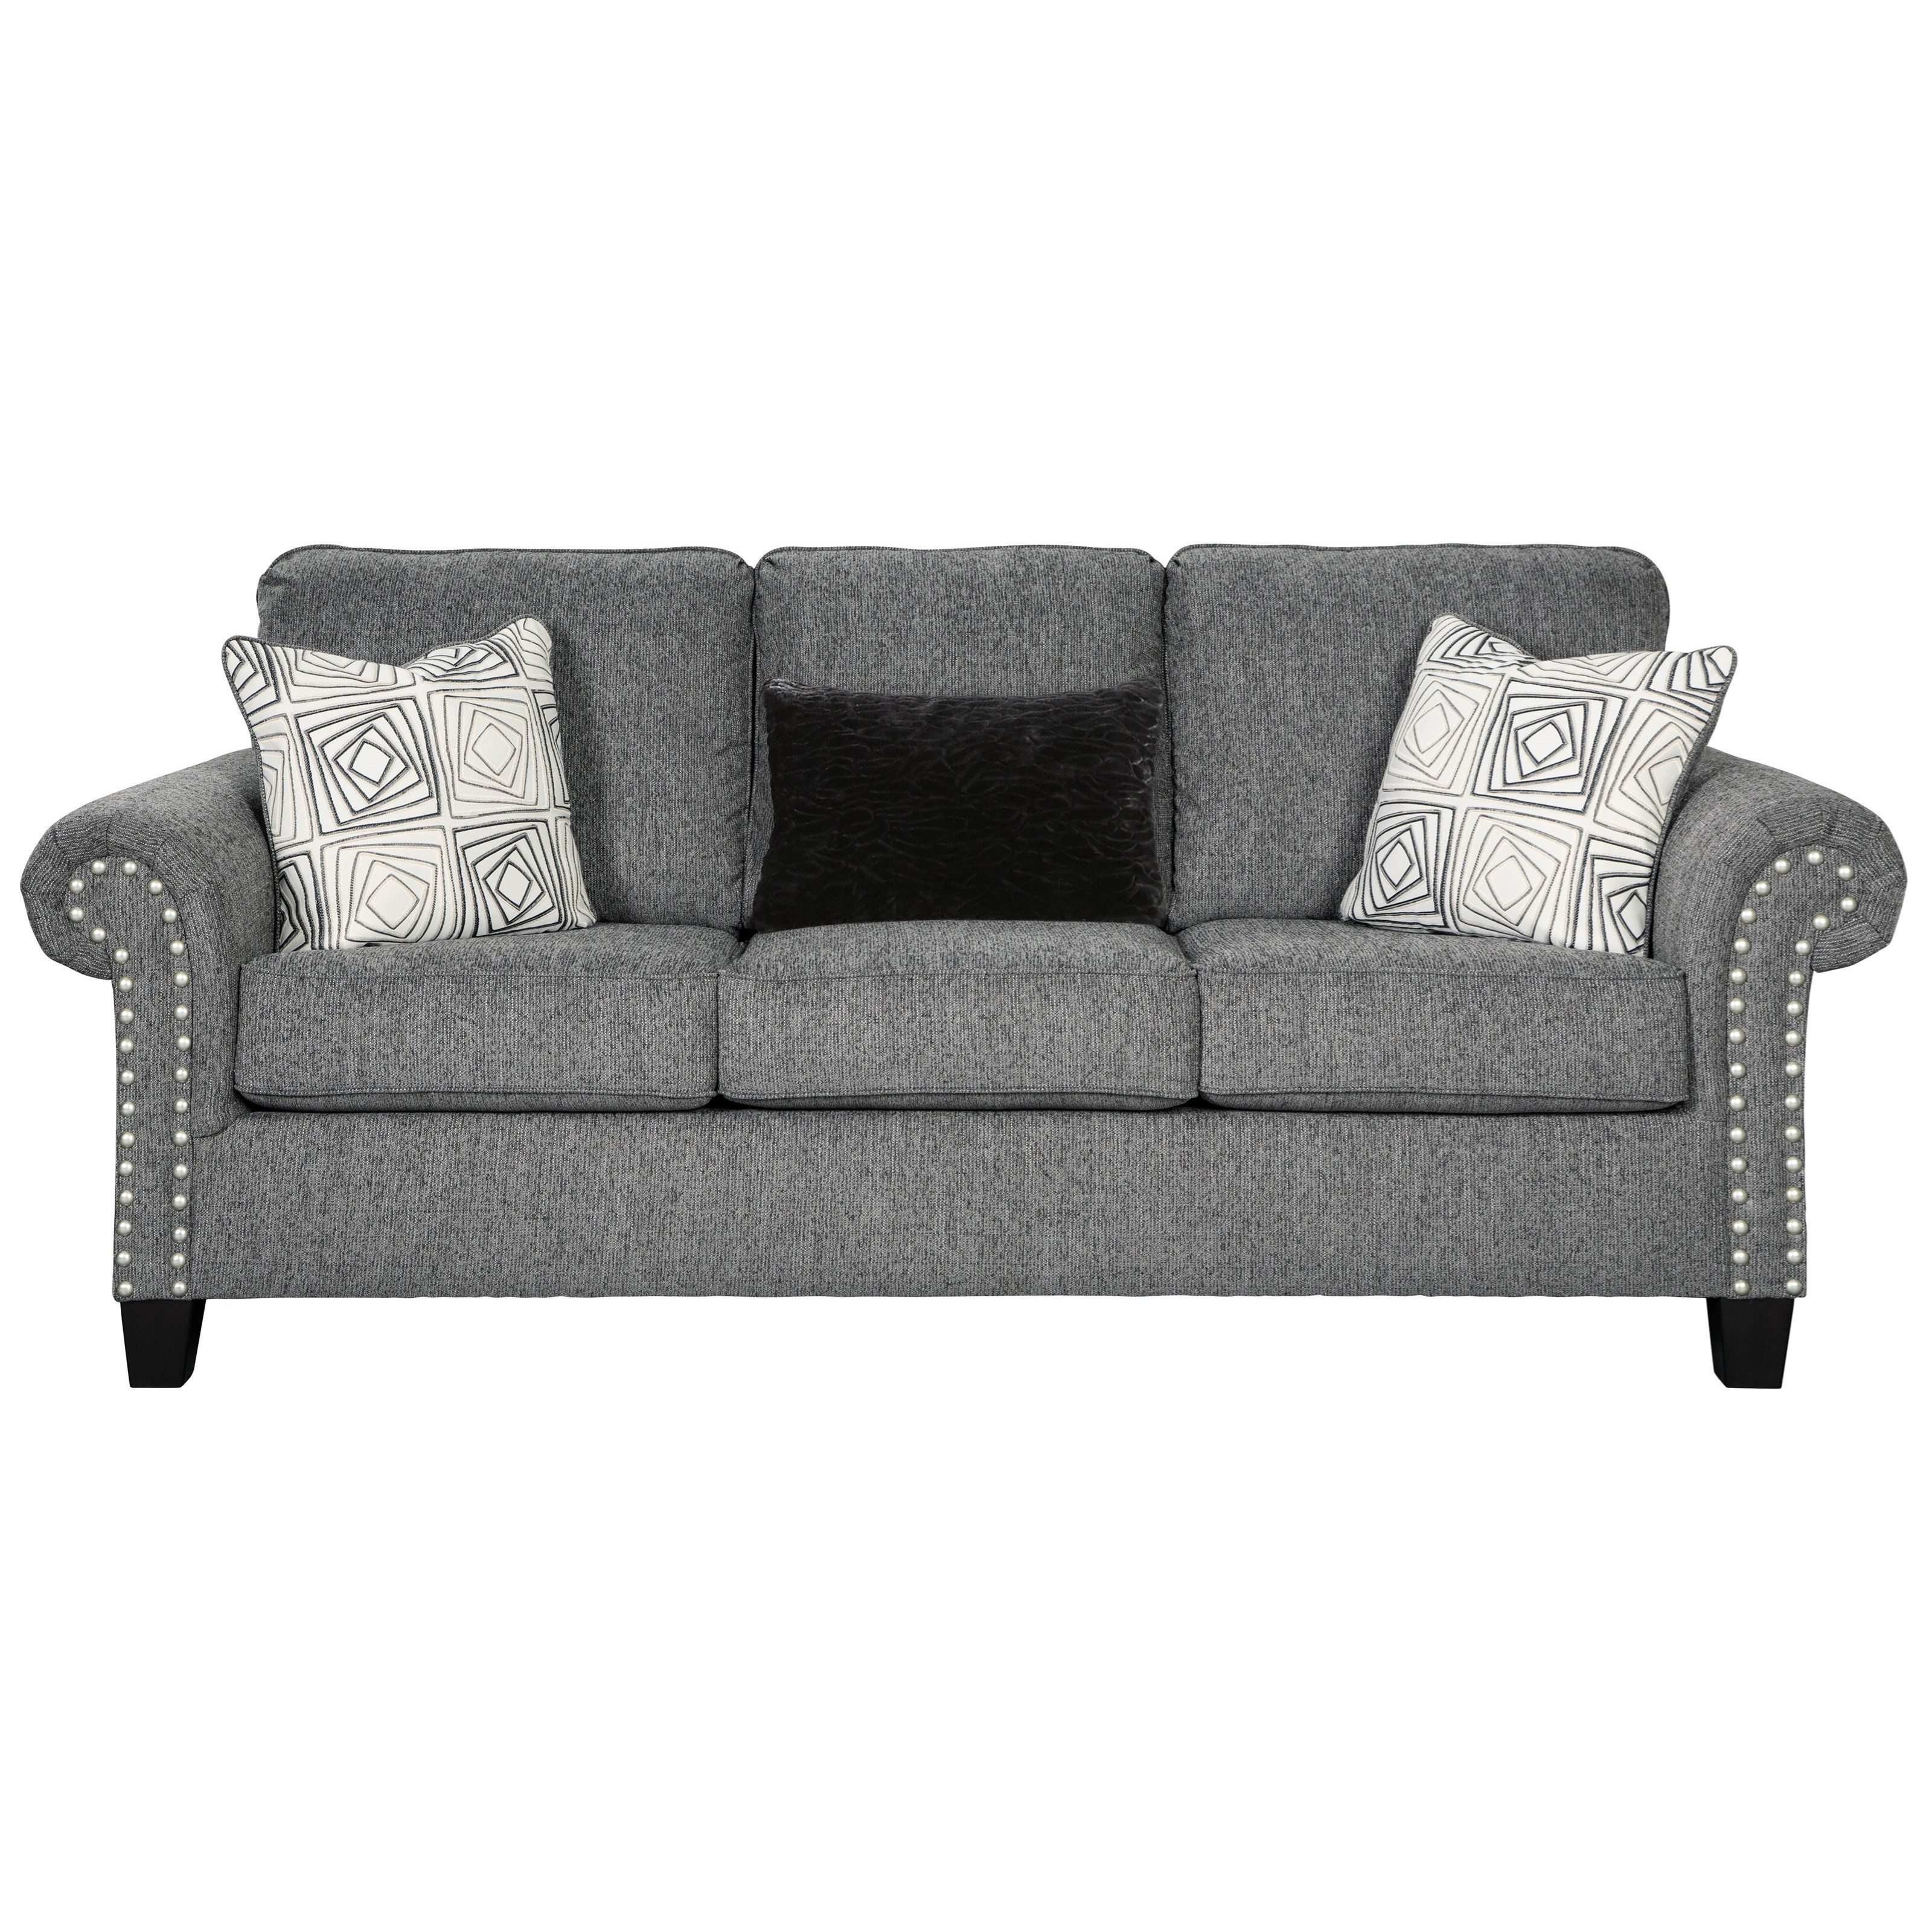 Agleno Sofa by Benchcraft at Rooms and Rest